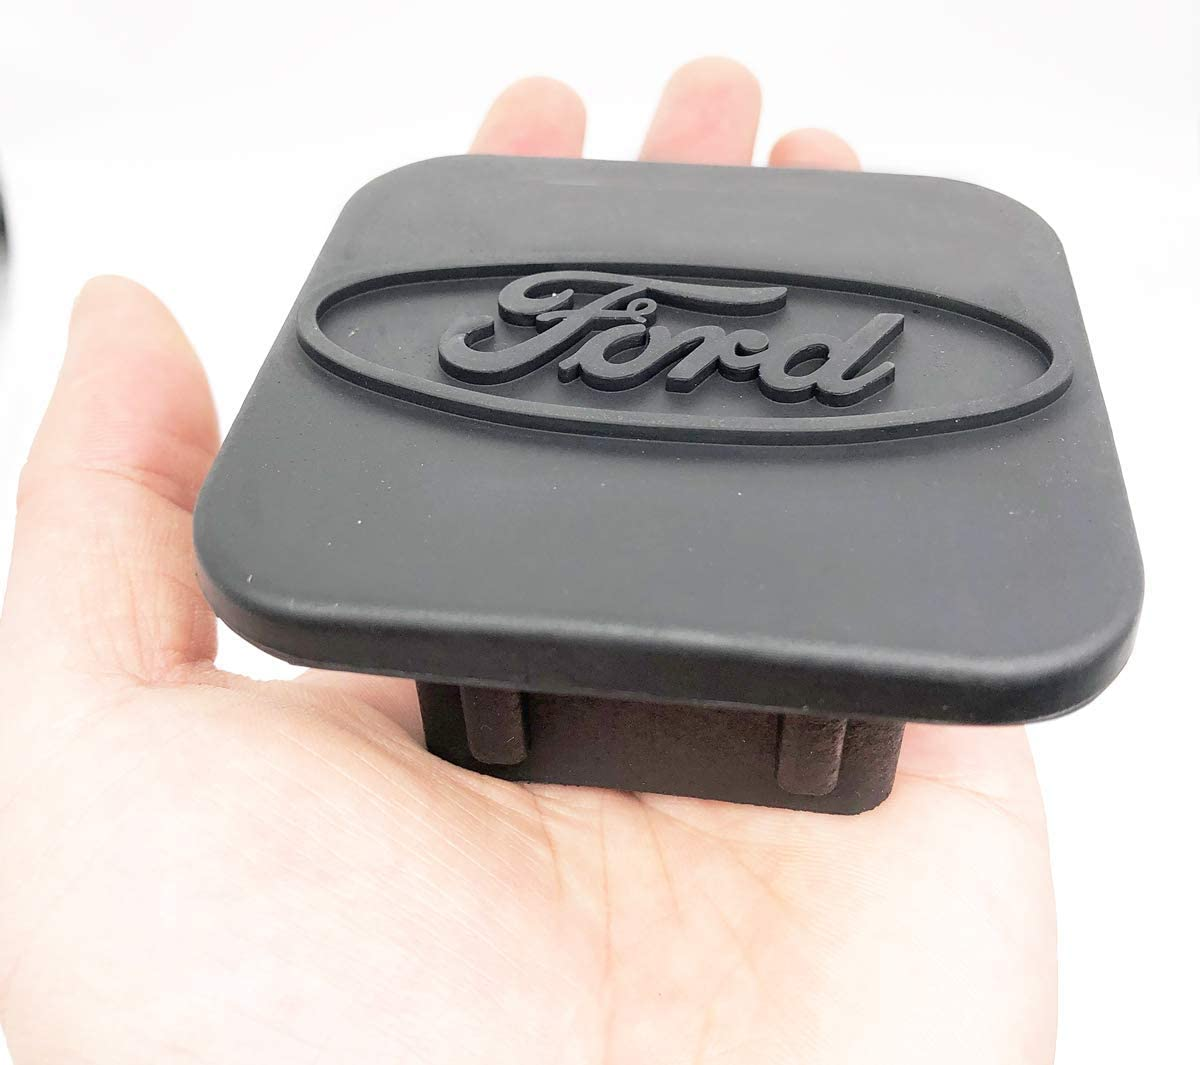 fit Toyota I life Trailer Hitch Tube Cover Plug Cap for Toyota,Rubber Receiver Tube Hitch Plug,Trailer Hitch Cover